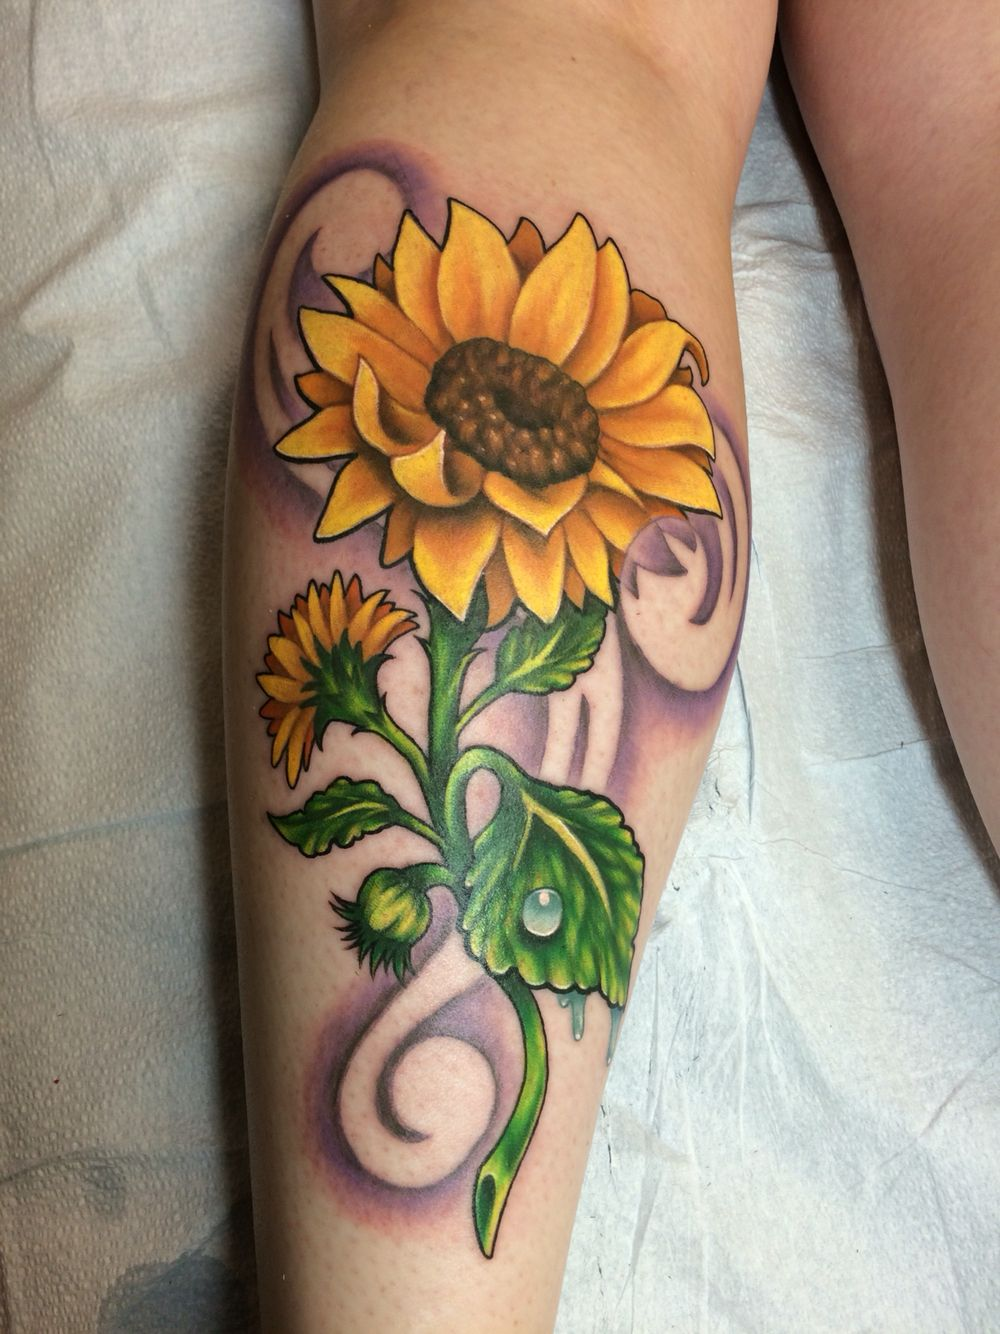 My sunflower tattoo by Eric Hayes at Pikes Peak Tattoo in